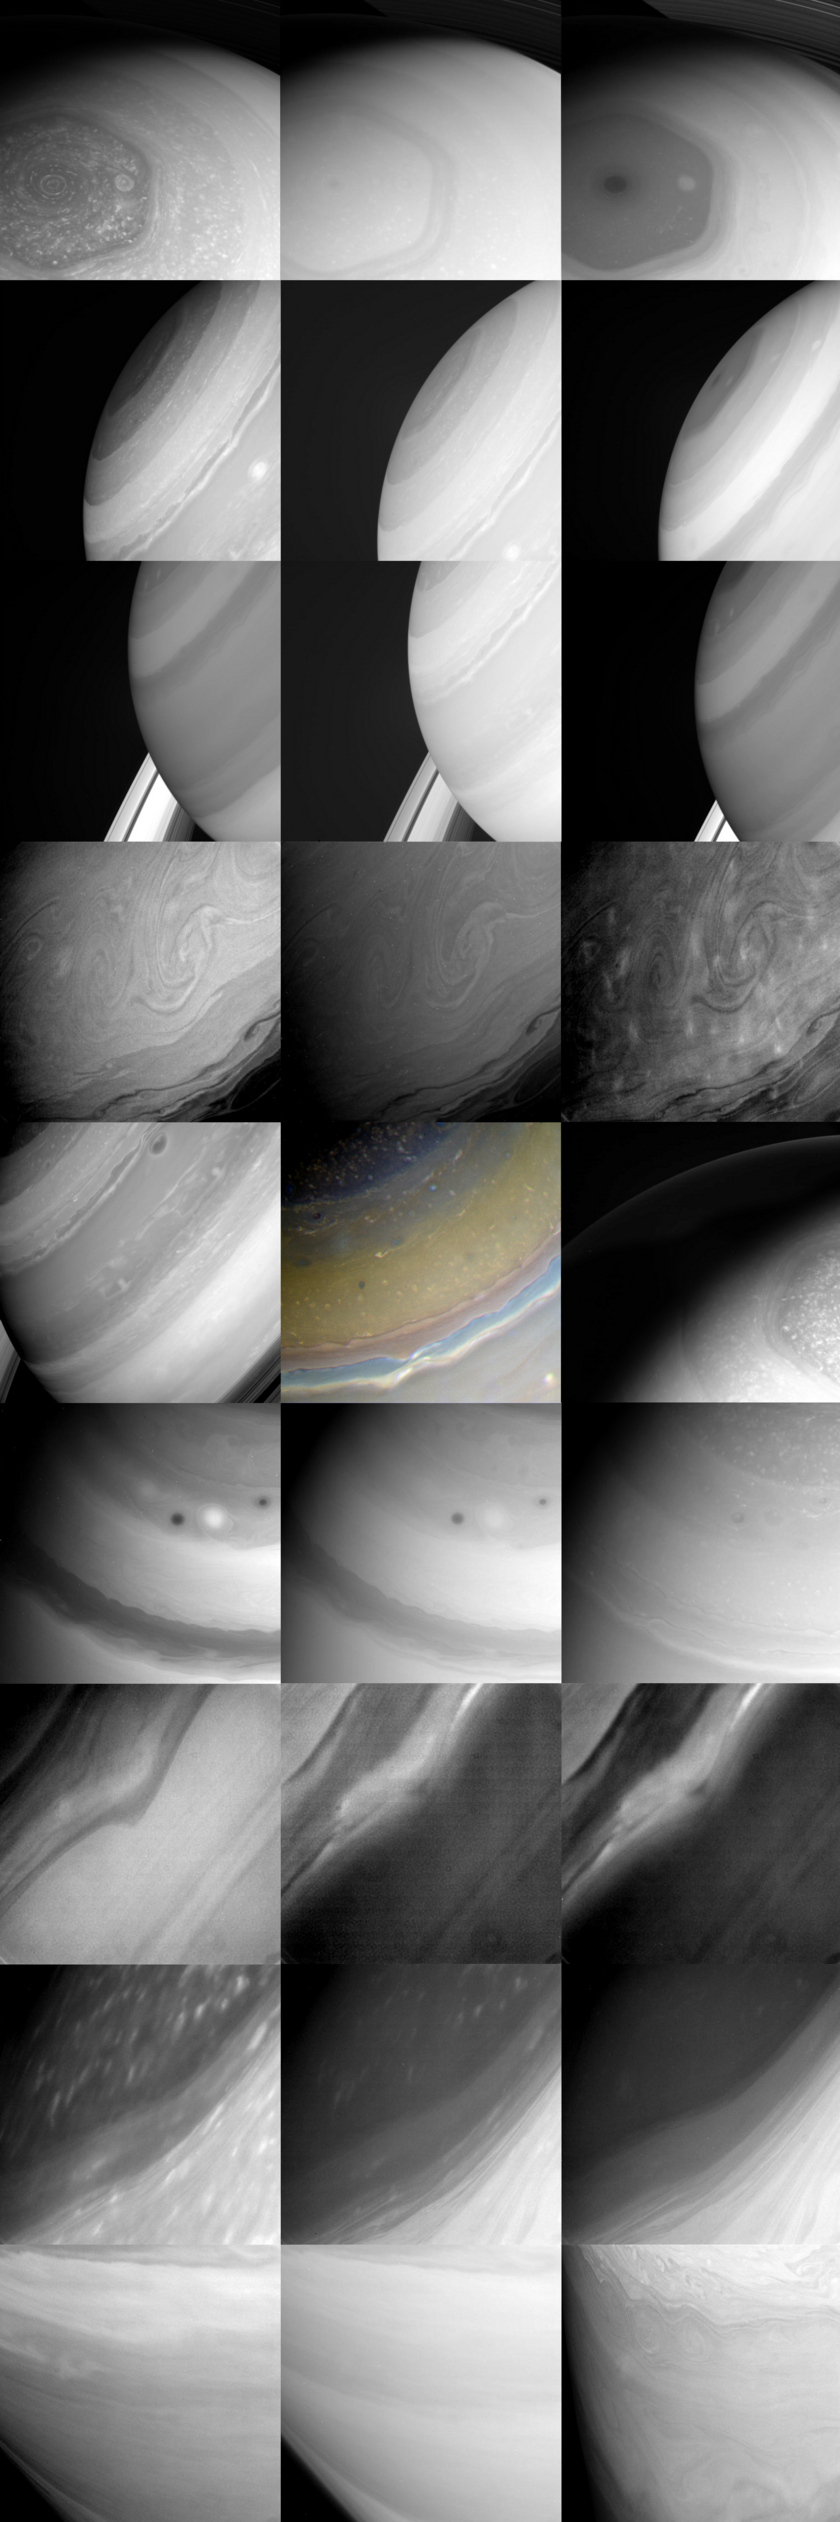 http://planetary.s3.amazonaws.com/assets/images/6-saturn/2013/20130303_saturn_storms_feb13_f840.jpg